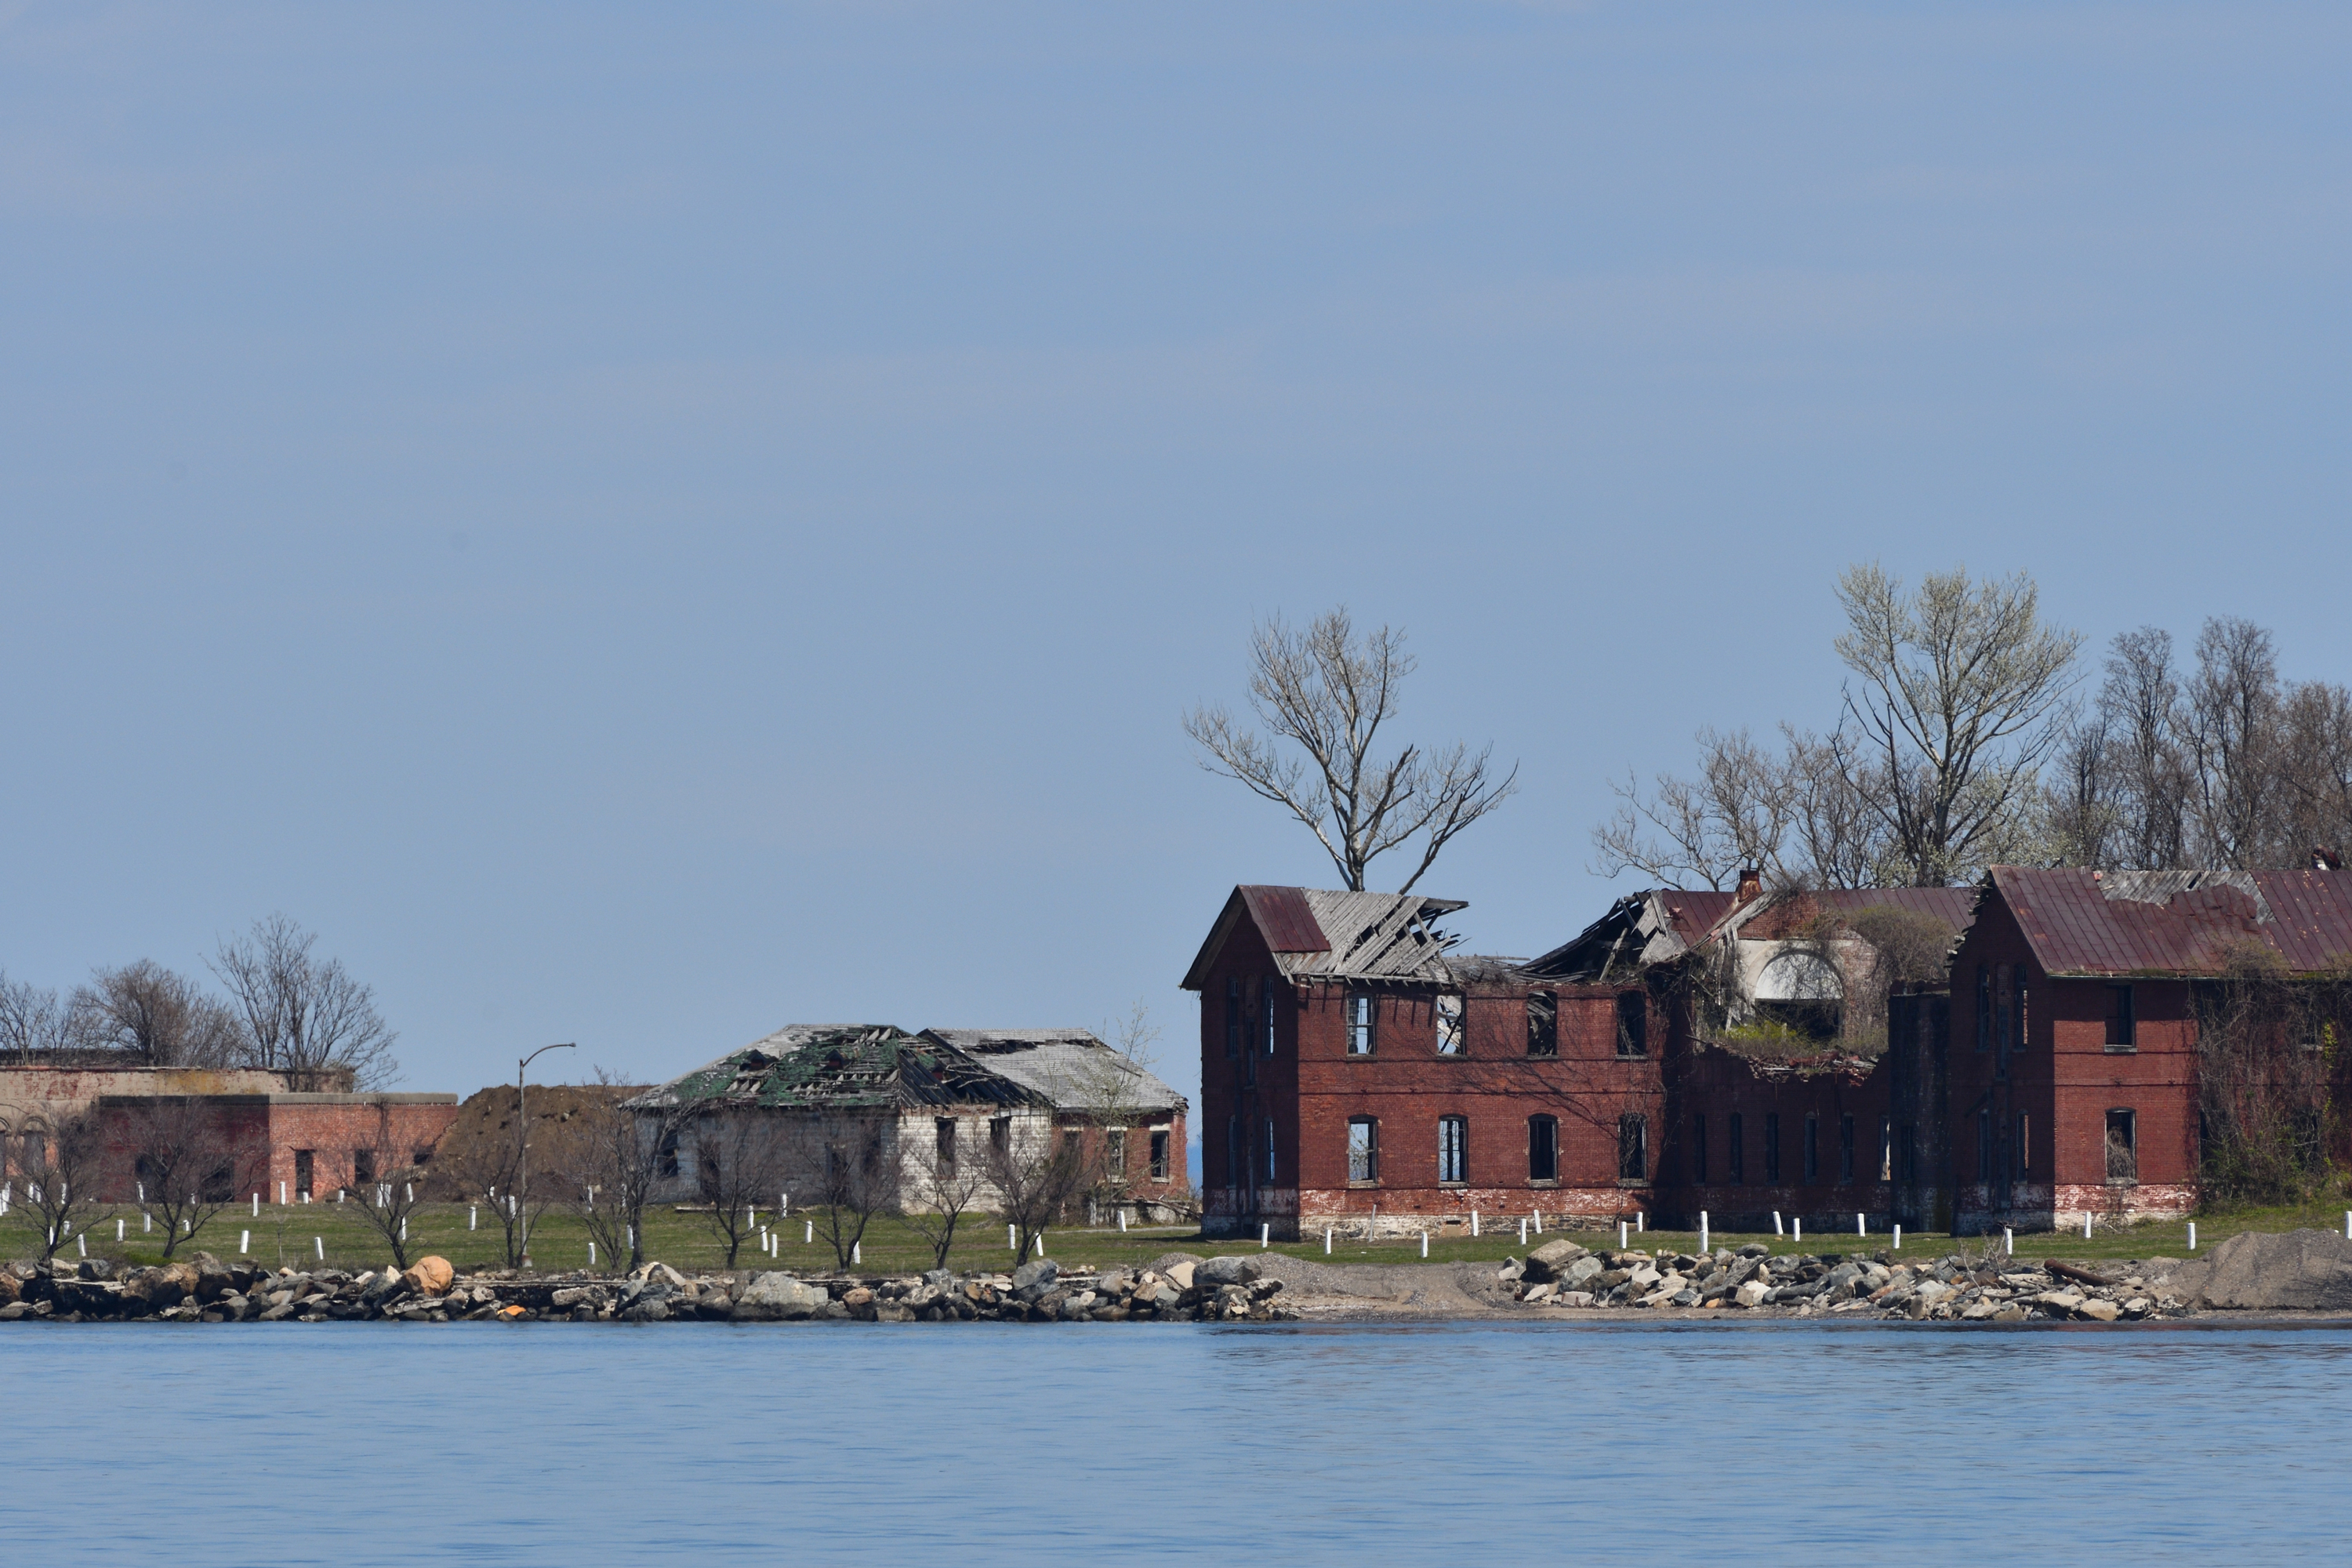 Harts Island is home to the city's massive public cemetery. April 25, 2020.